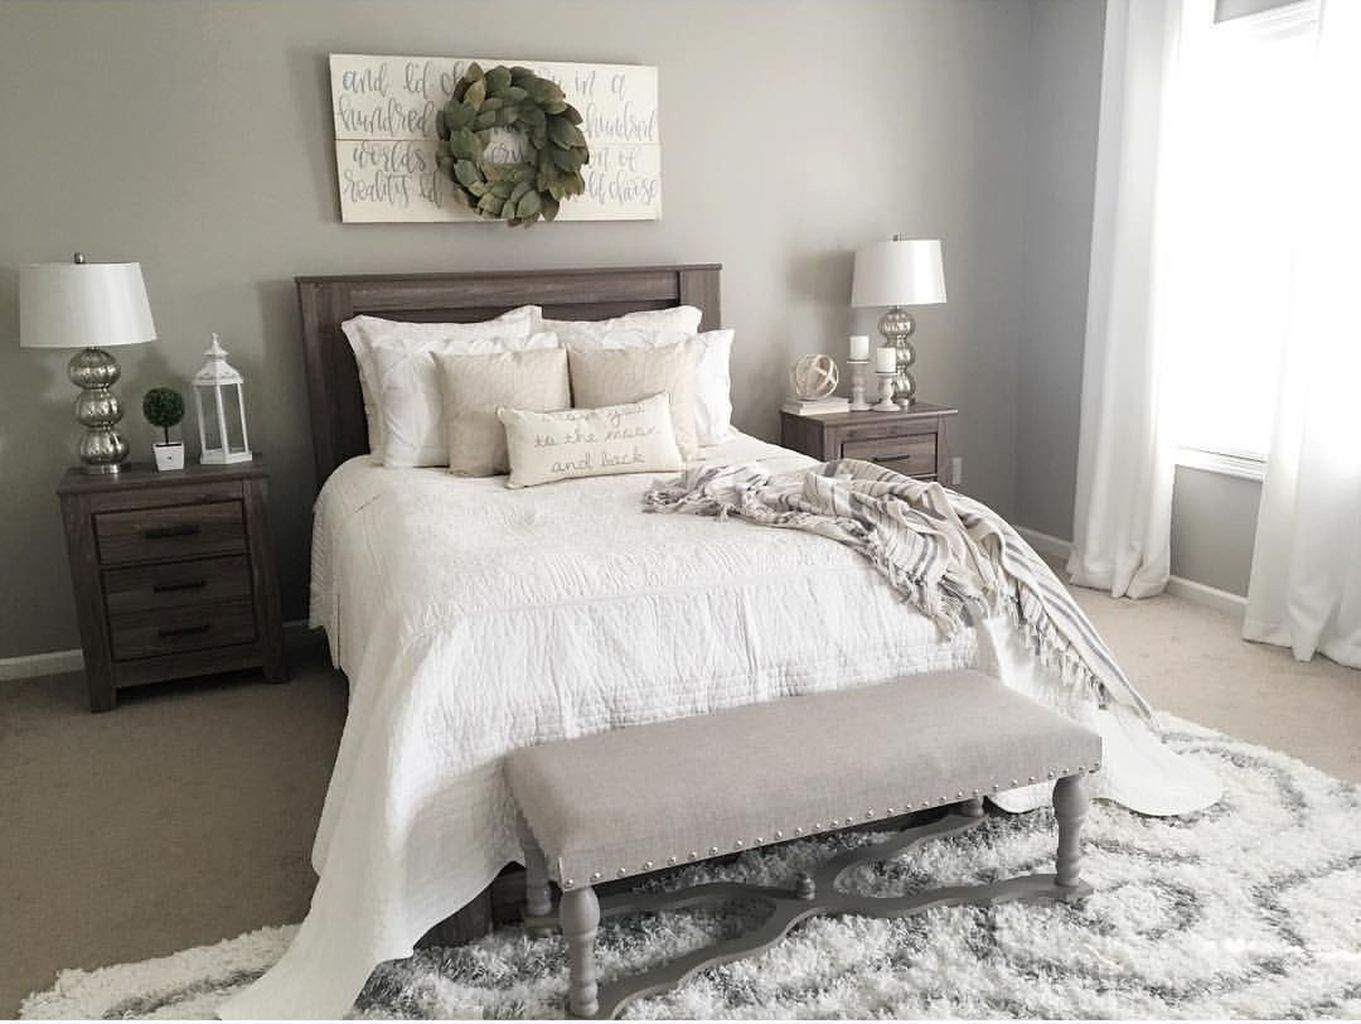 Superieur Cool 70 Rustic Farmhouse Style Master Bedroom Ideas  Https://homstuff.com/2017/11/14/70 Rustic Farmhouse Style Master Bedroom  Ideas/